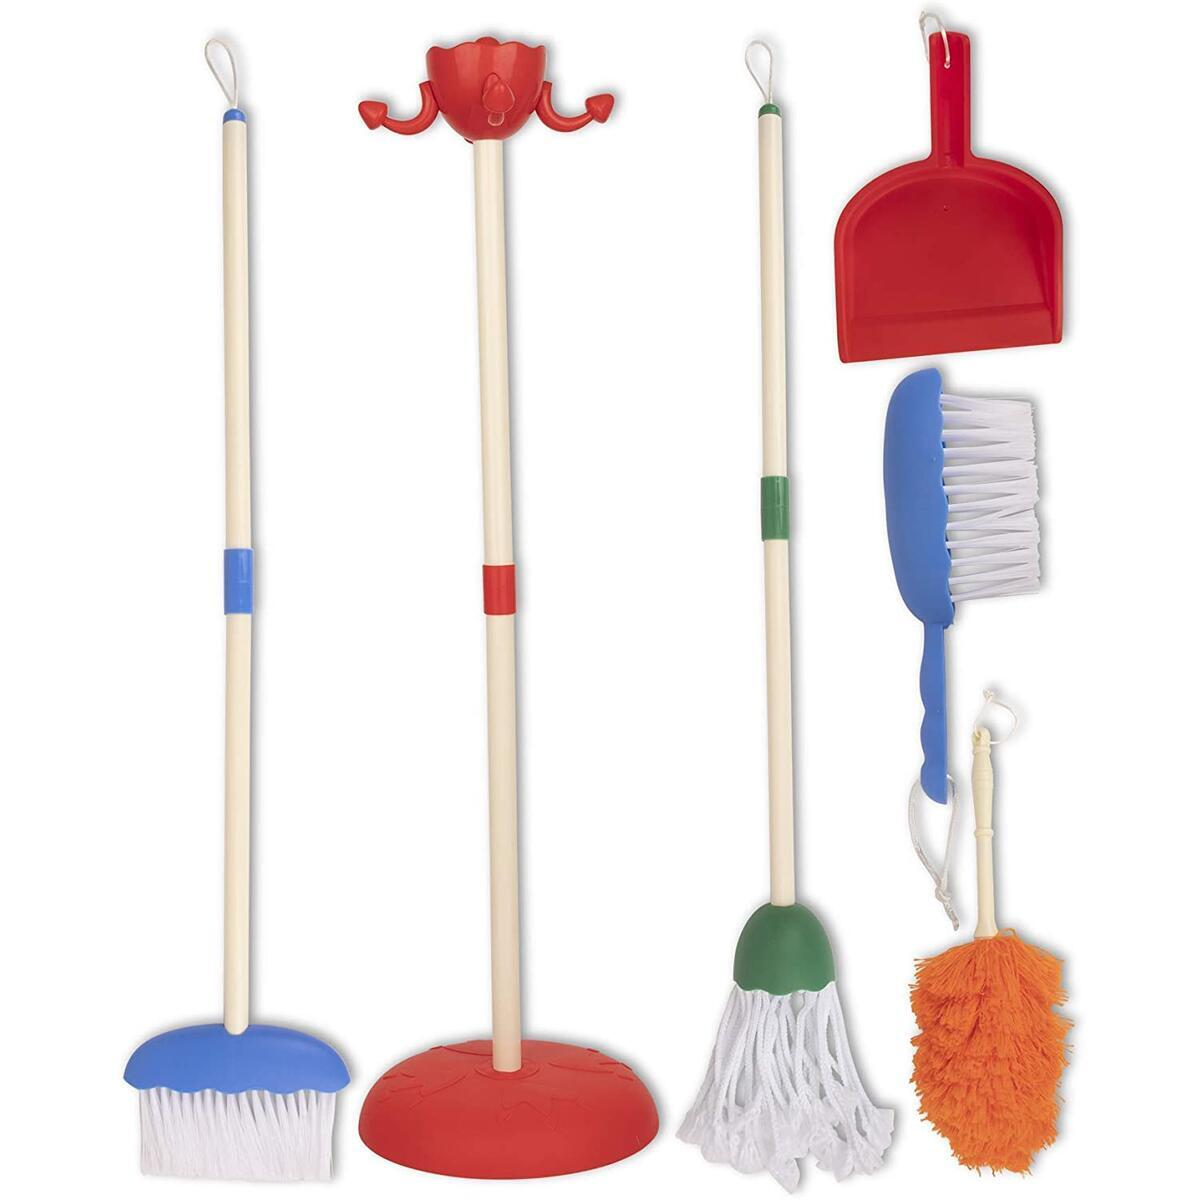 Playkidz Cleaning Role Set, 6Pcs, Includes Mop, Brush, Broom, Dustpan, and Organizer Stand, Play Helper Realistic Housekeeping Set, Recommended for Ages 3+